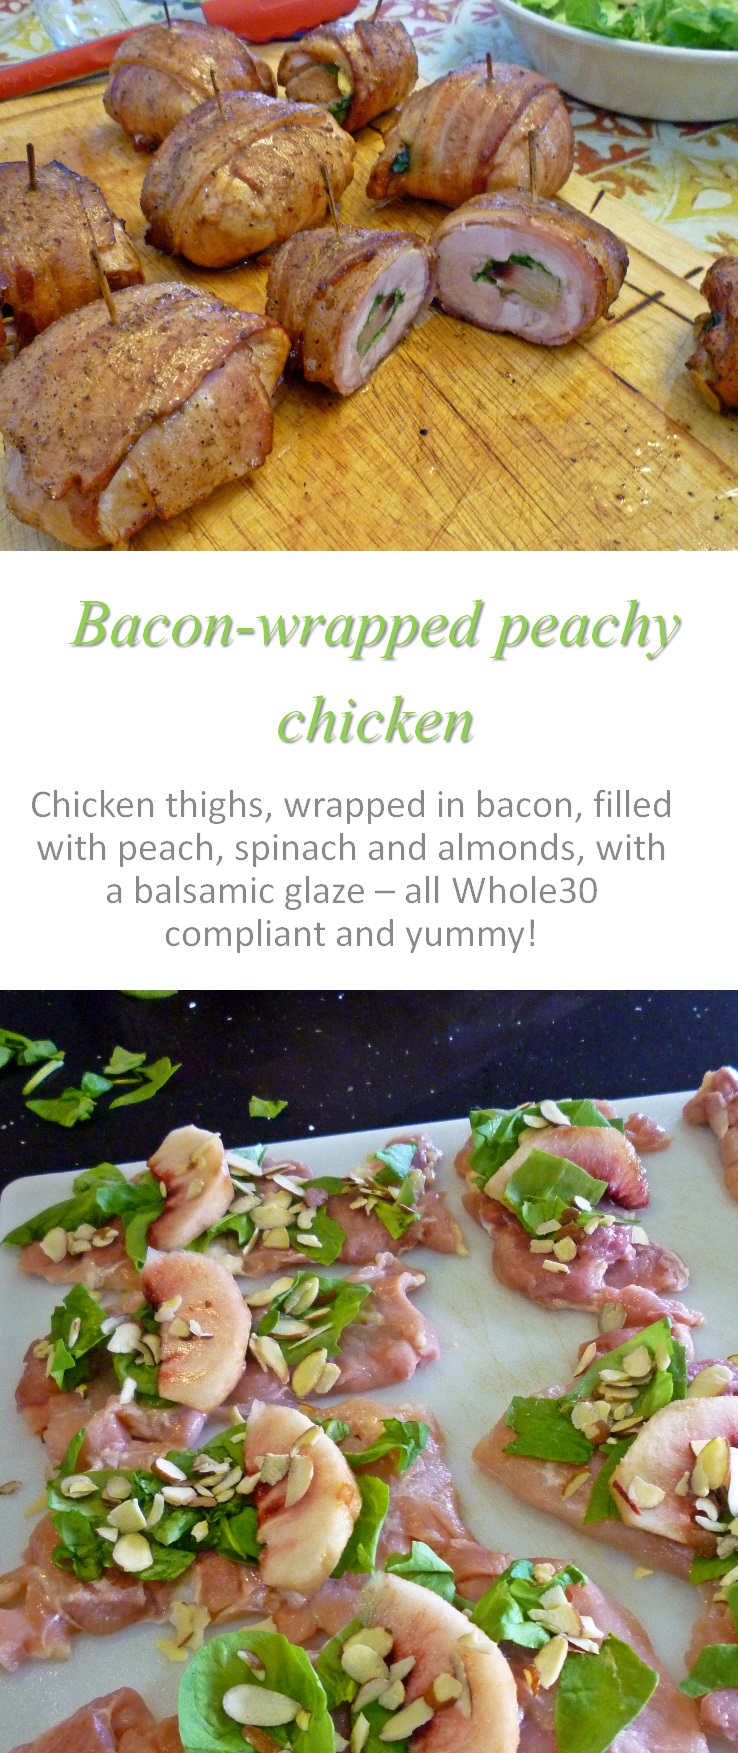 These bacon wrapped peachy chicken thighs are a unique combination of ingredients, smoked and enjoyed by all! #bacon #chicken